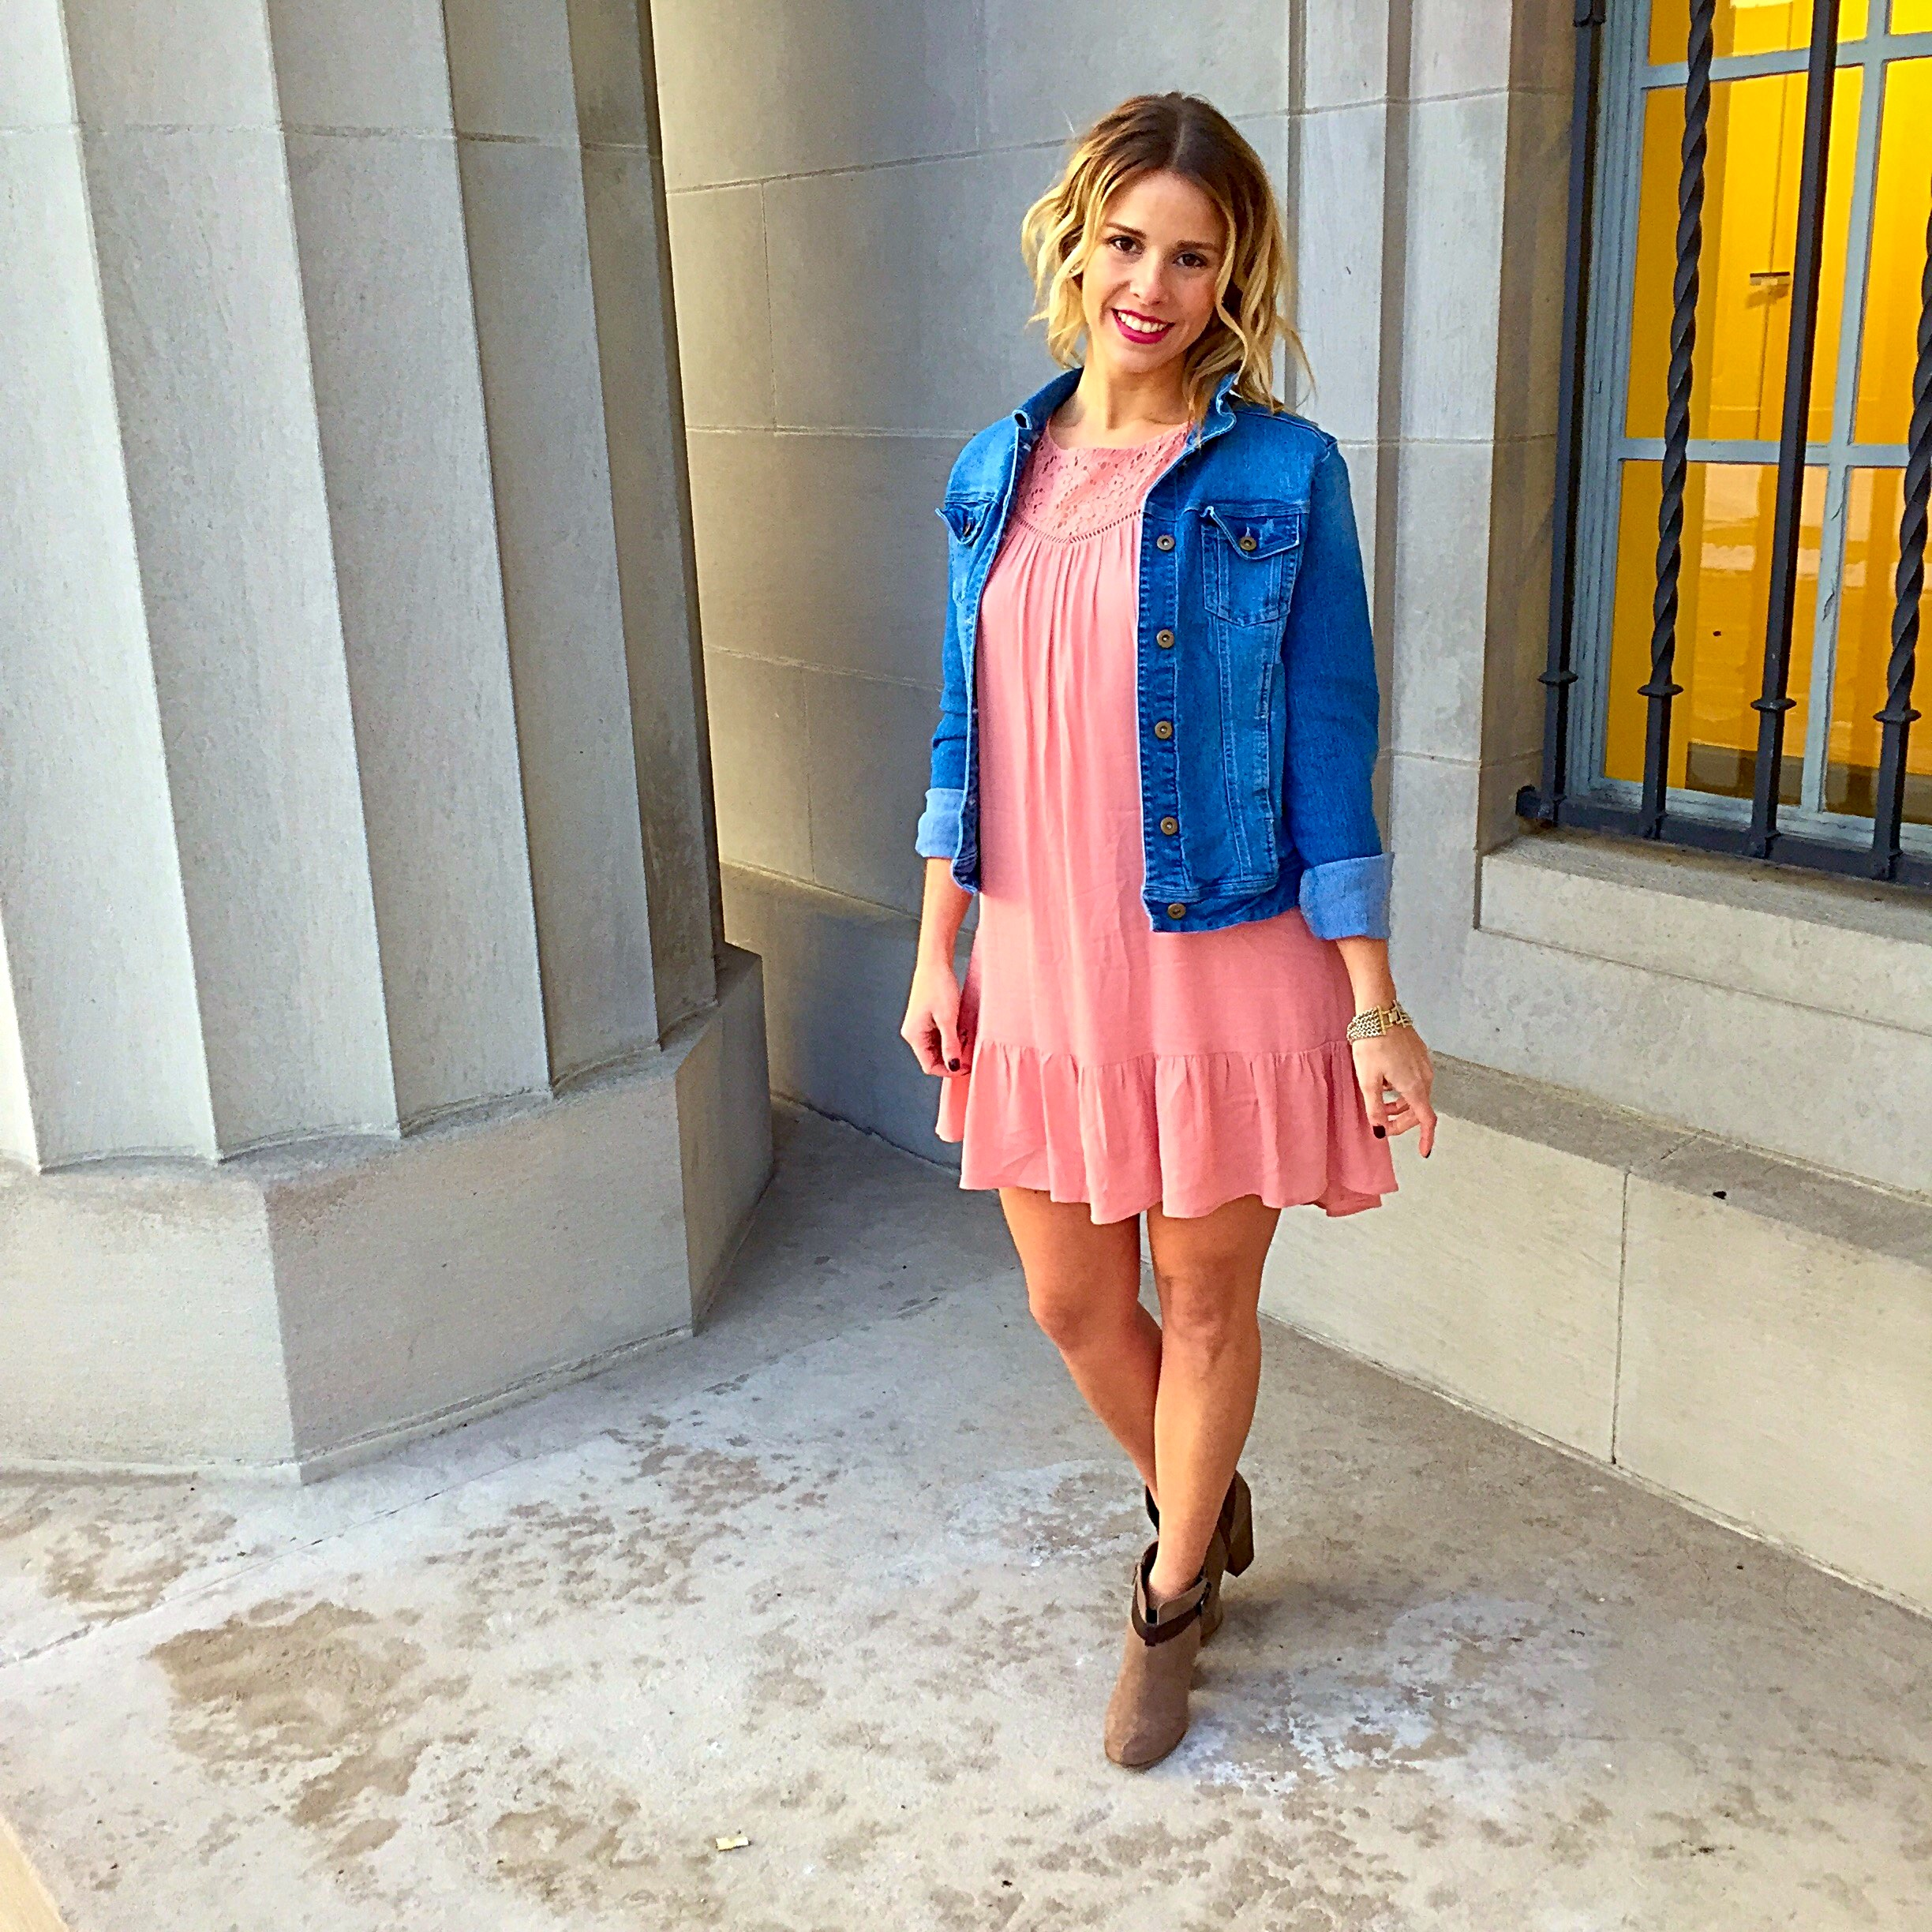 Woman in pink dress and jean jacket